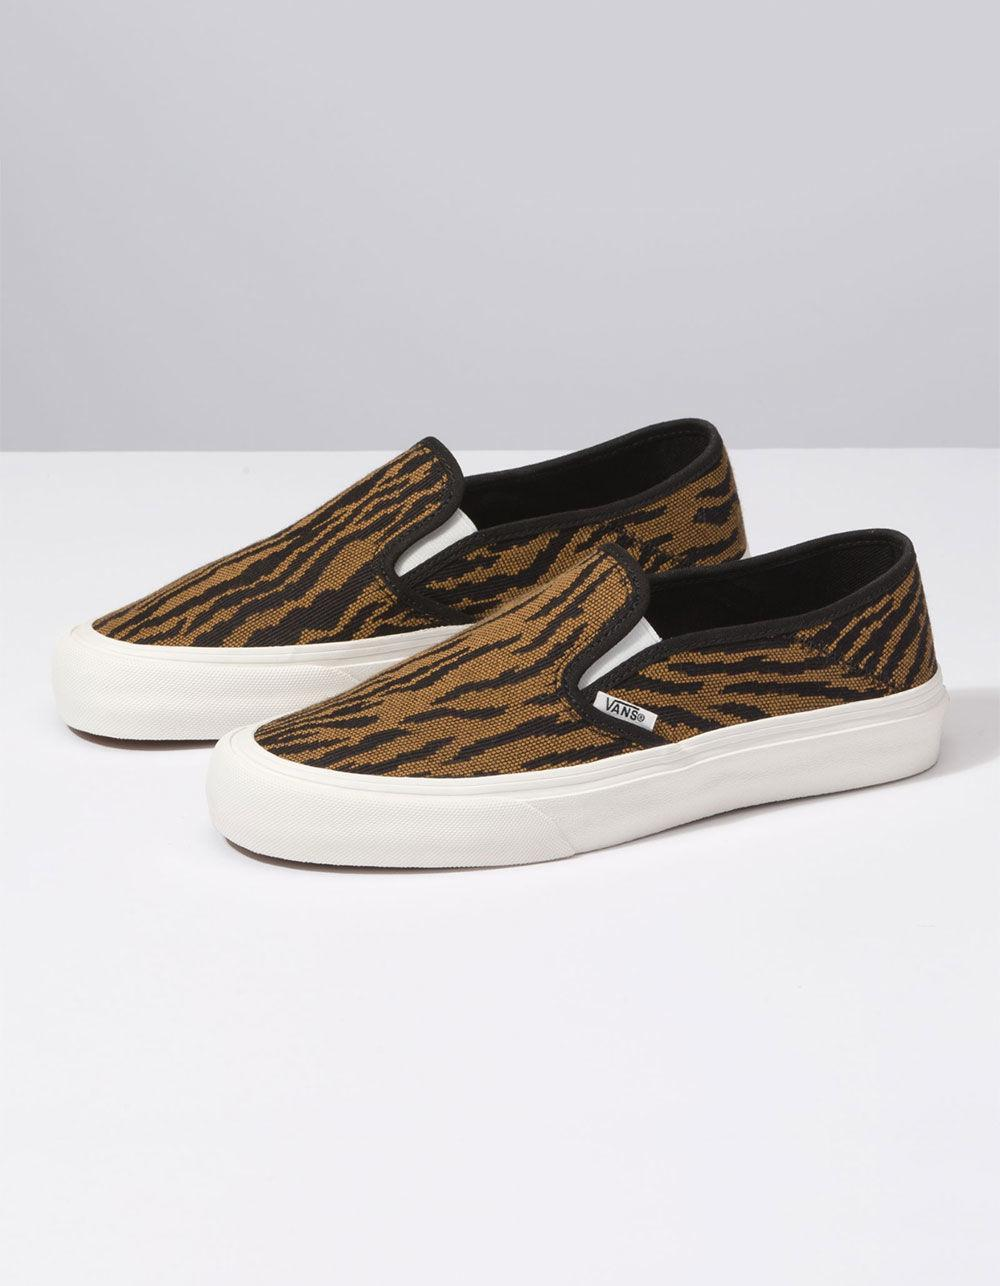 75f7560632bf Lyst - Vans Woven Tiger Slip-on Sf Womens Shoes in Black